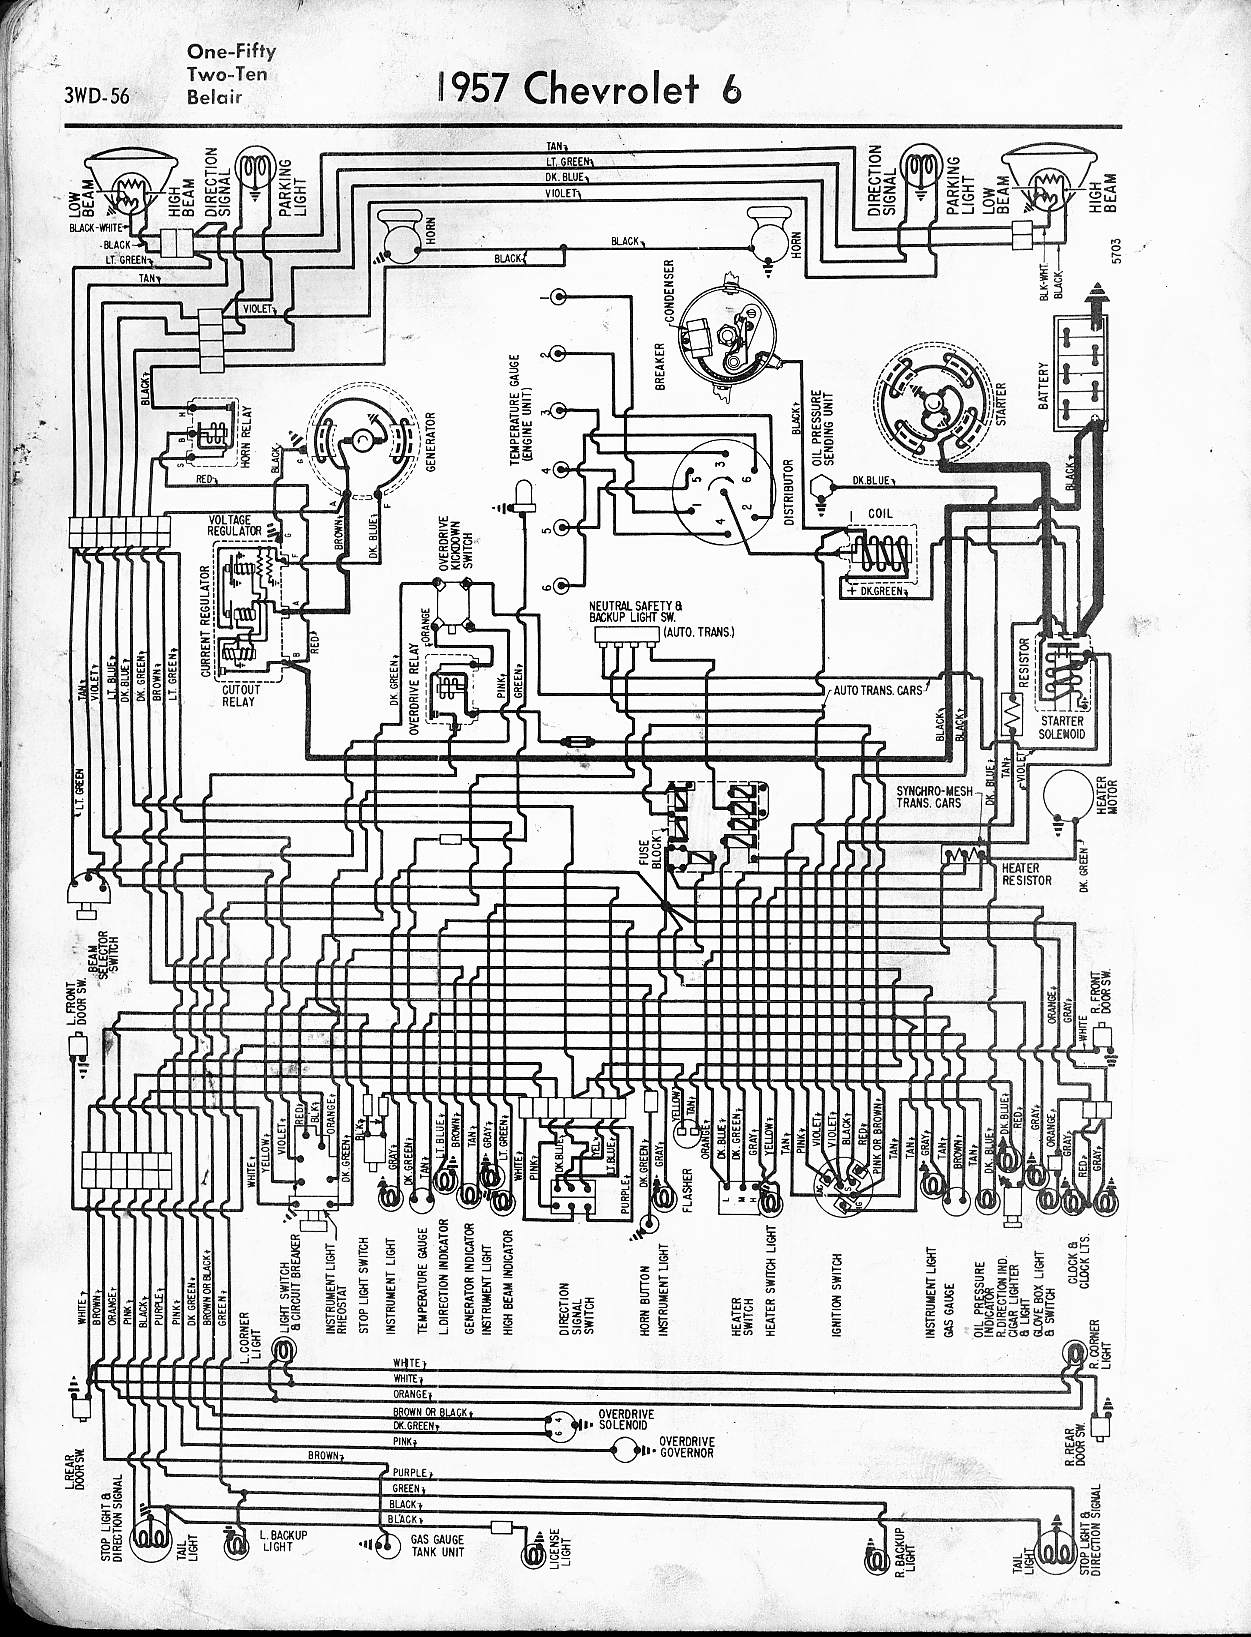 MWireChev57_3WD 056 57 65 chevy wiring diagrams 57 chevy truck wiring harness at mifinder.co